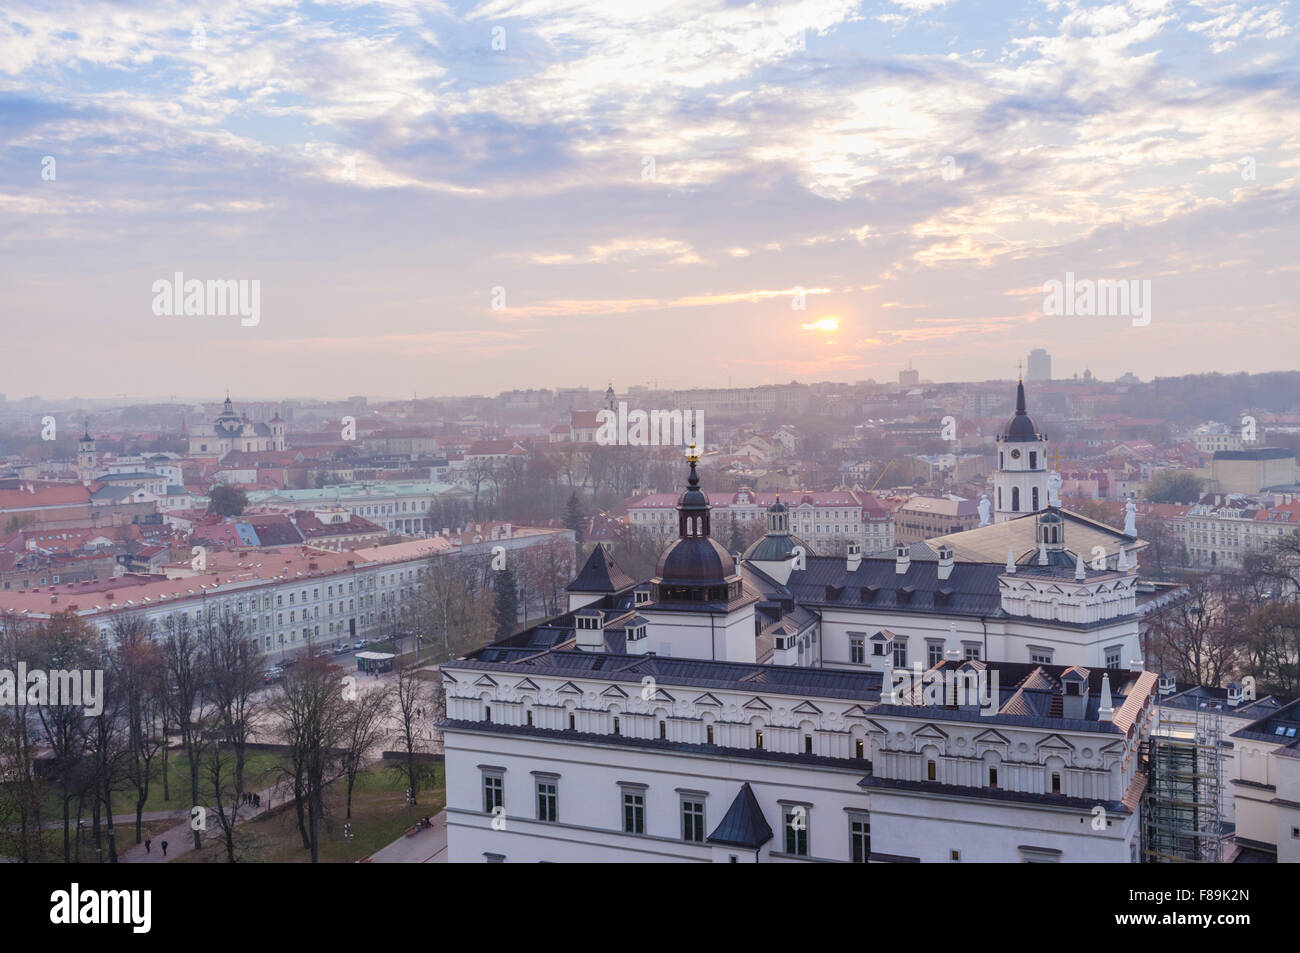 Old town overview and Grand Dukes Palace. Vilnius, Lithuania, Europe - Stock Image